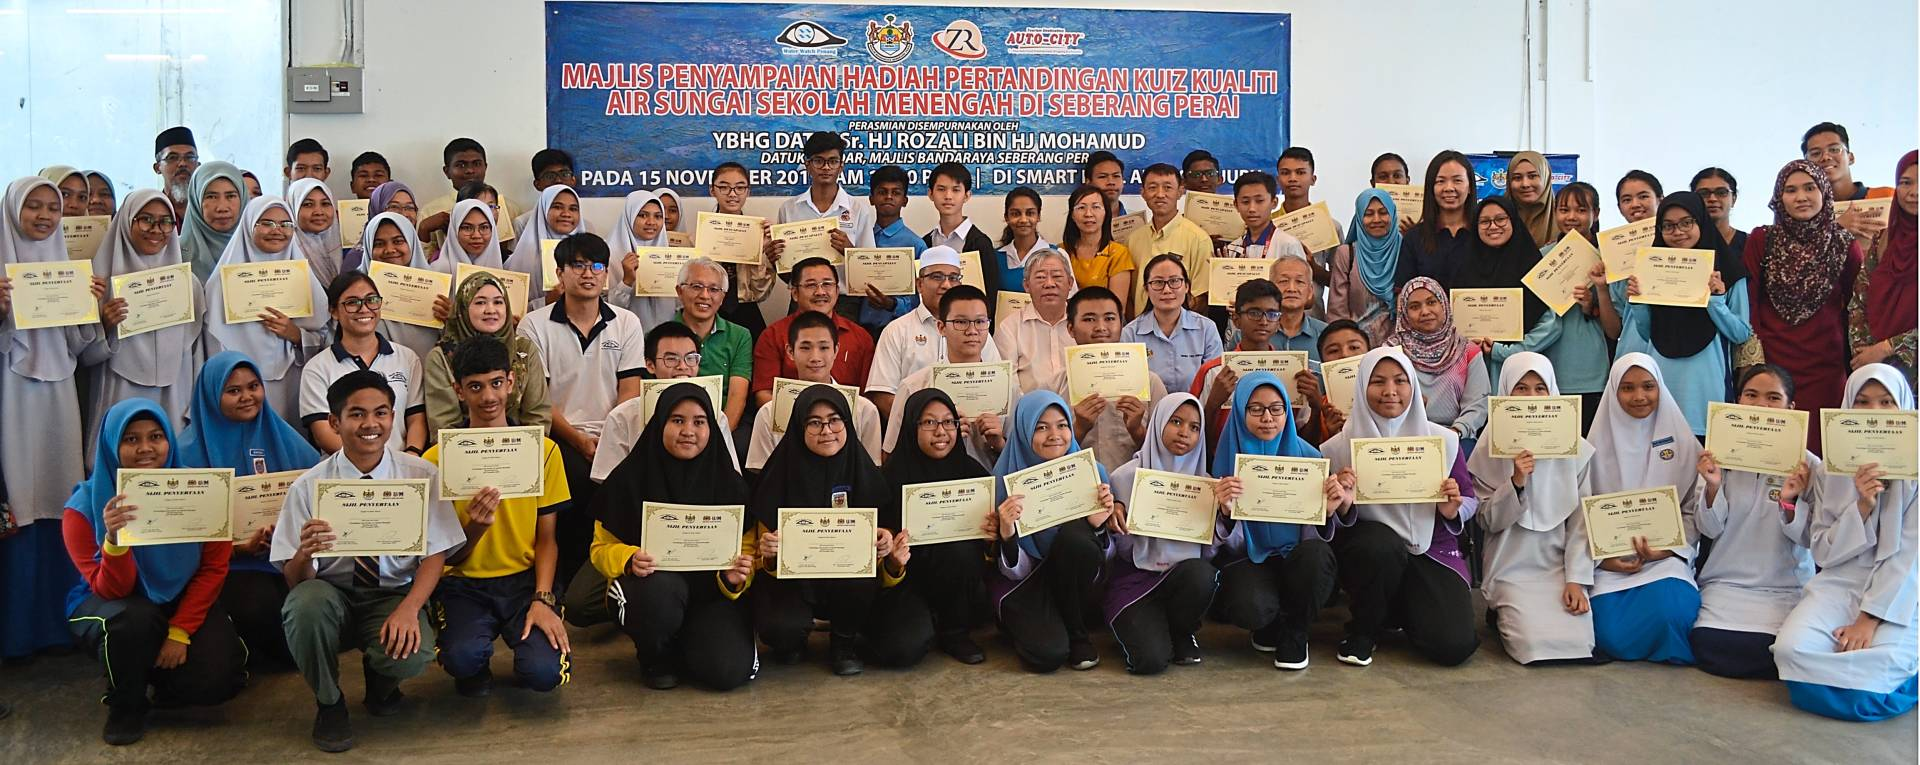 The first three winners posing for a group photo after receiving their prizes at the Auto-City Juru near Bukit Mertajam. With them are (seated, from left) Phang, MBSP community director Norhayati Suleiman, Dr Tan, Teoh, Gu, Rozali, Michael Tan, Heng, MBSP LA 21 coordinator Chew Eng Seng and MBSP community senior assistant director Amira Ahmad.